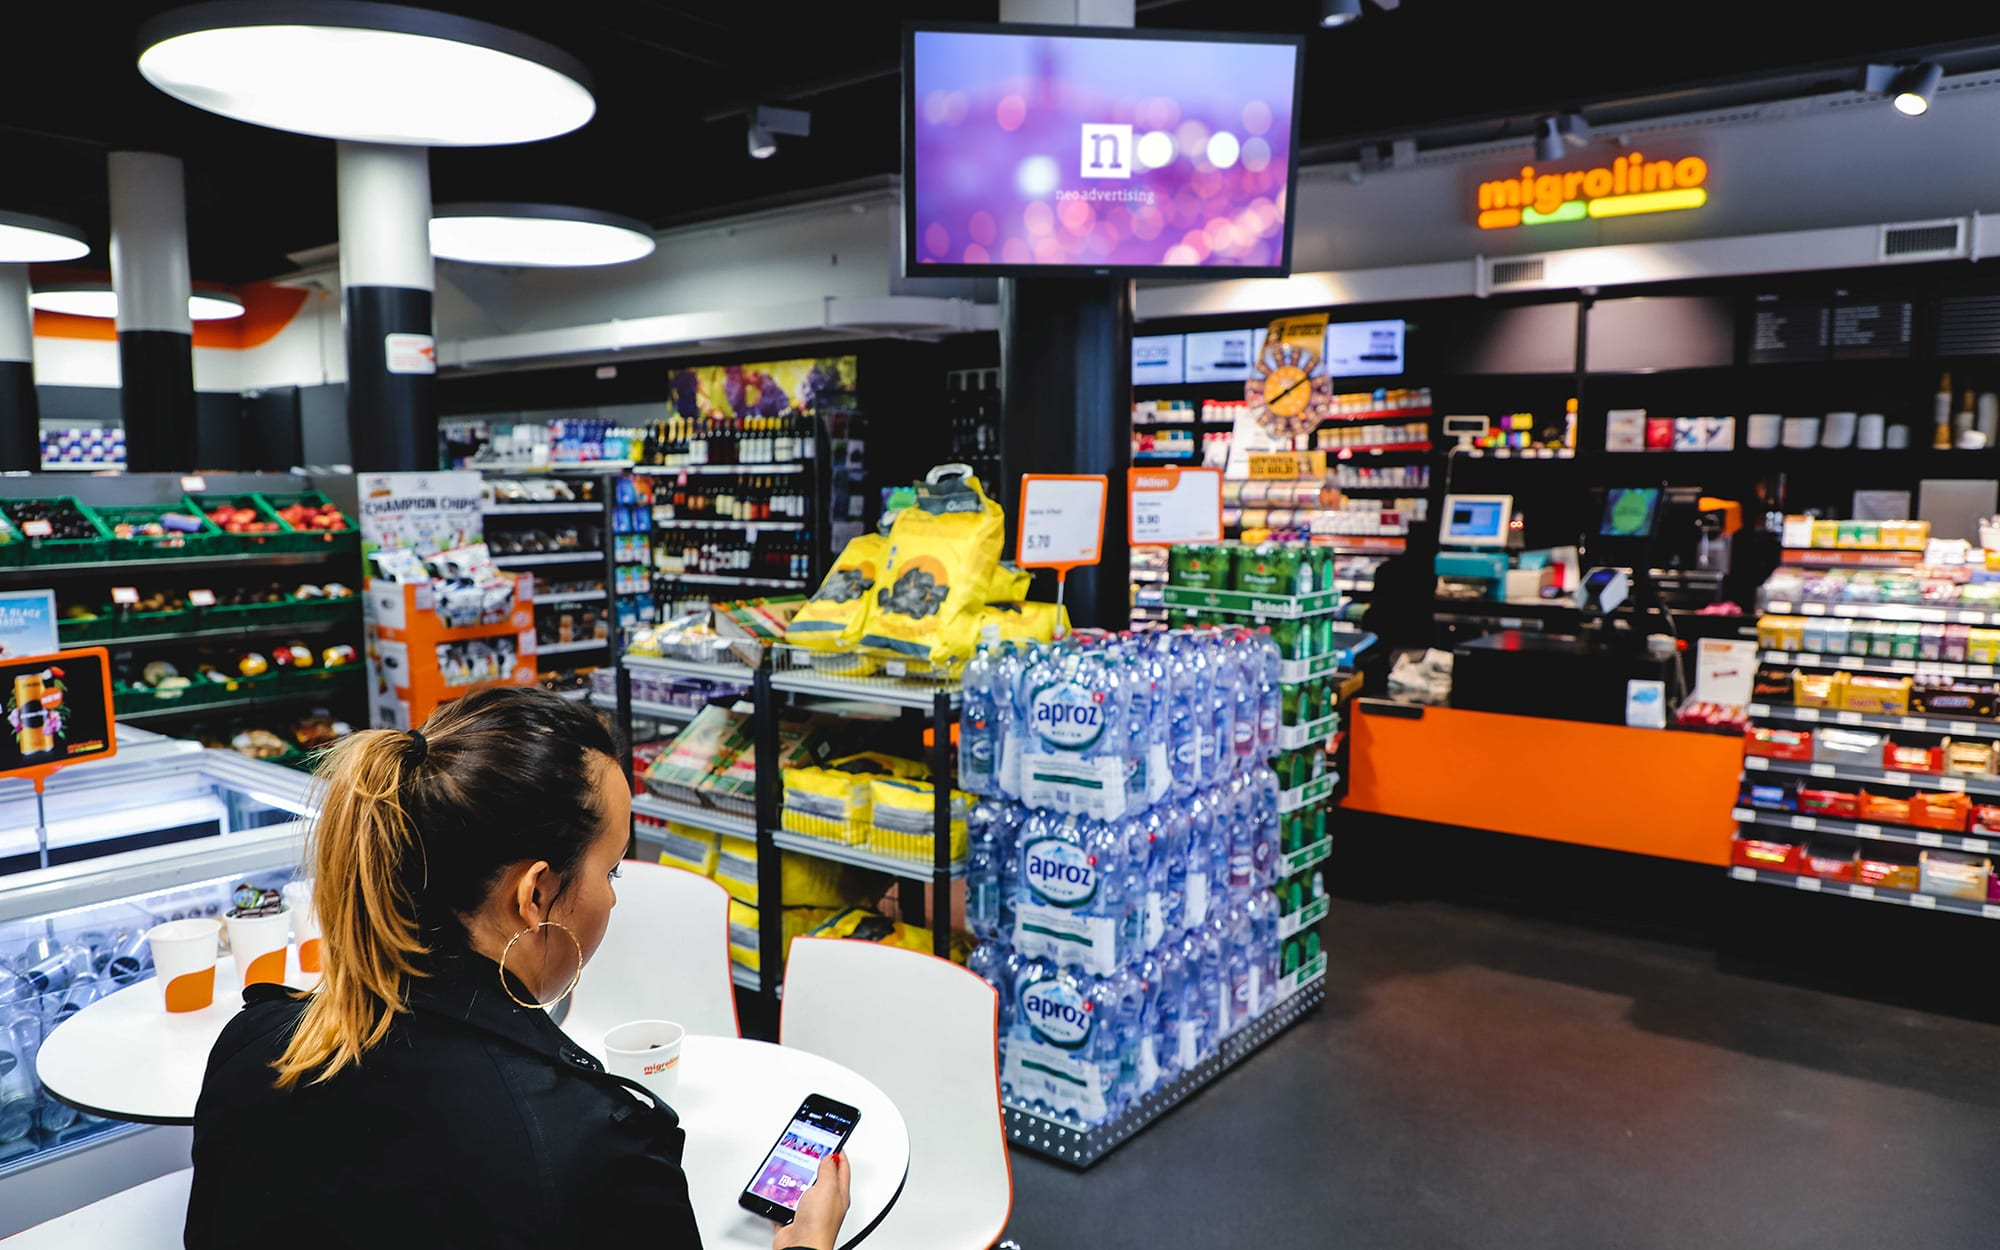 Migrolino screens, POS - Neo Advertising